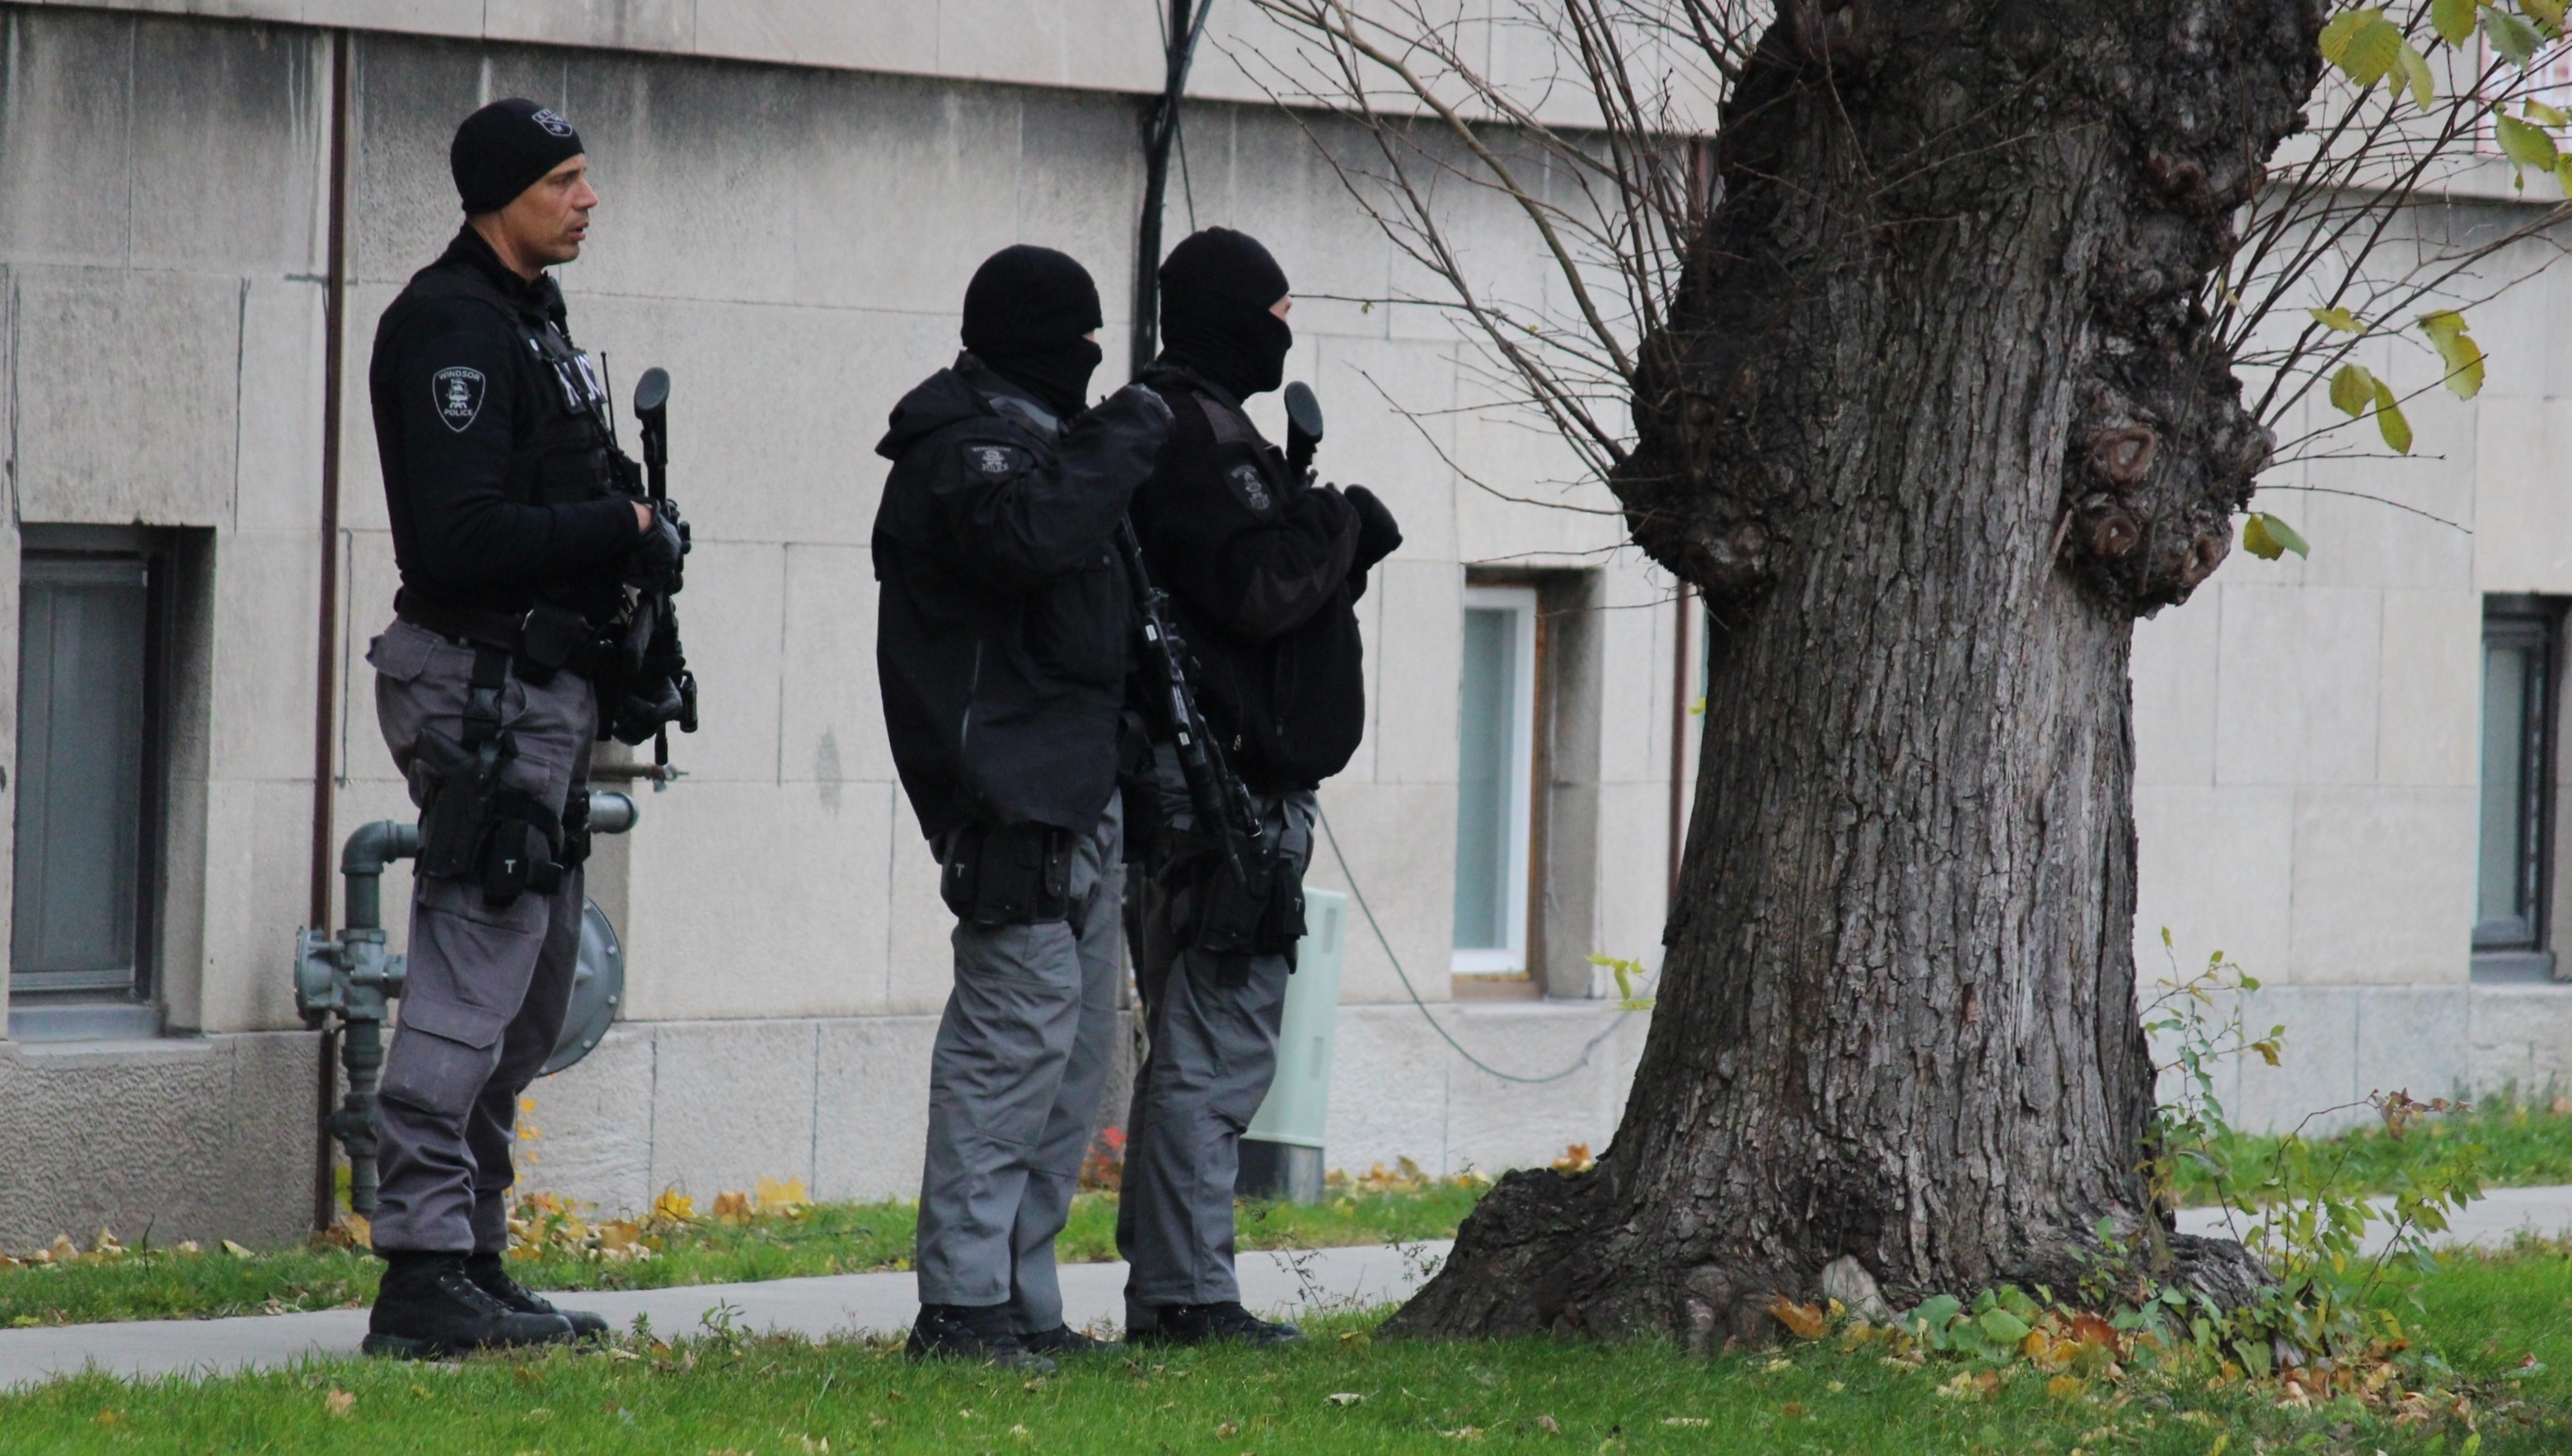 Windsor police investigate a man barricaded inside of an apartment on the corner of Lincoln Rd. and Richmond St., November 12, 2014. (photo by Mike Vlasveld)